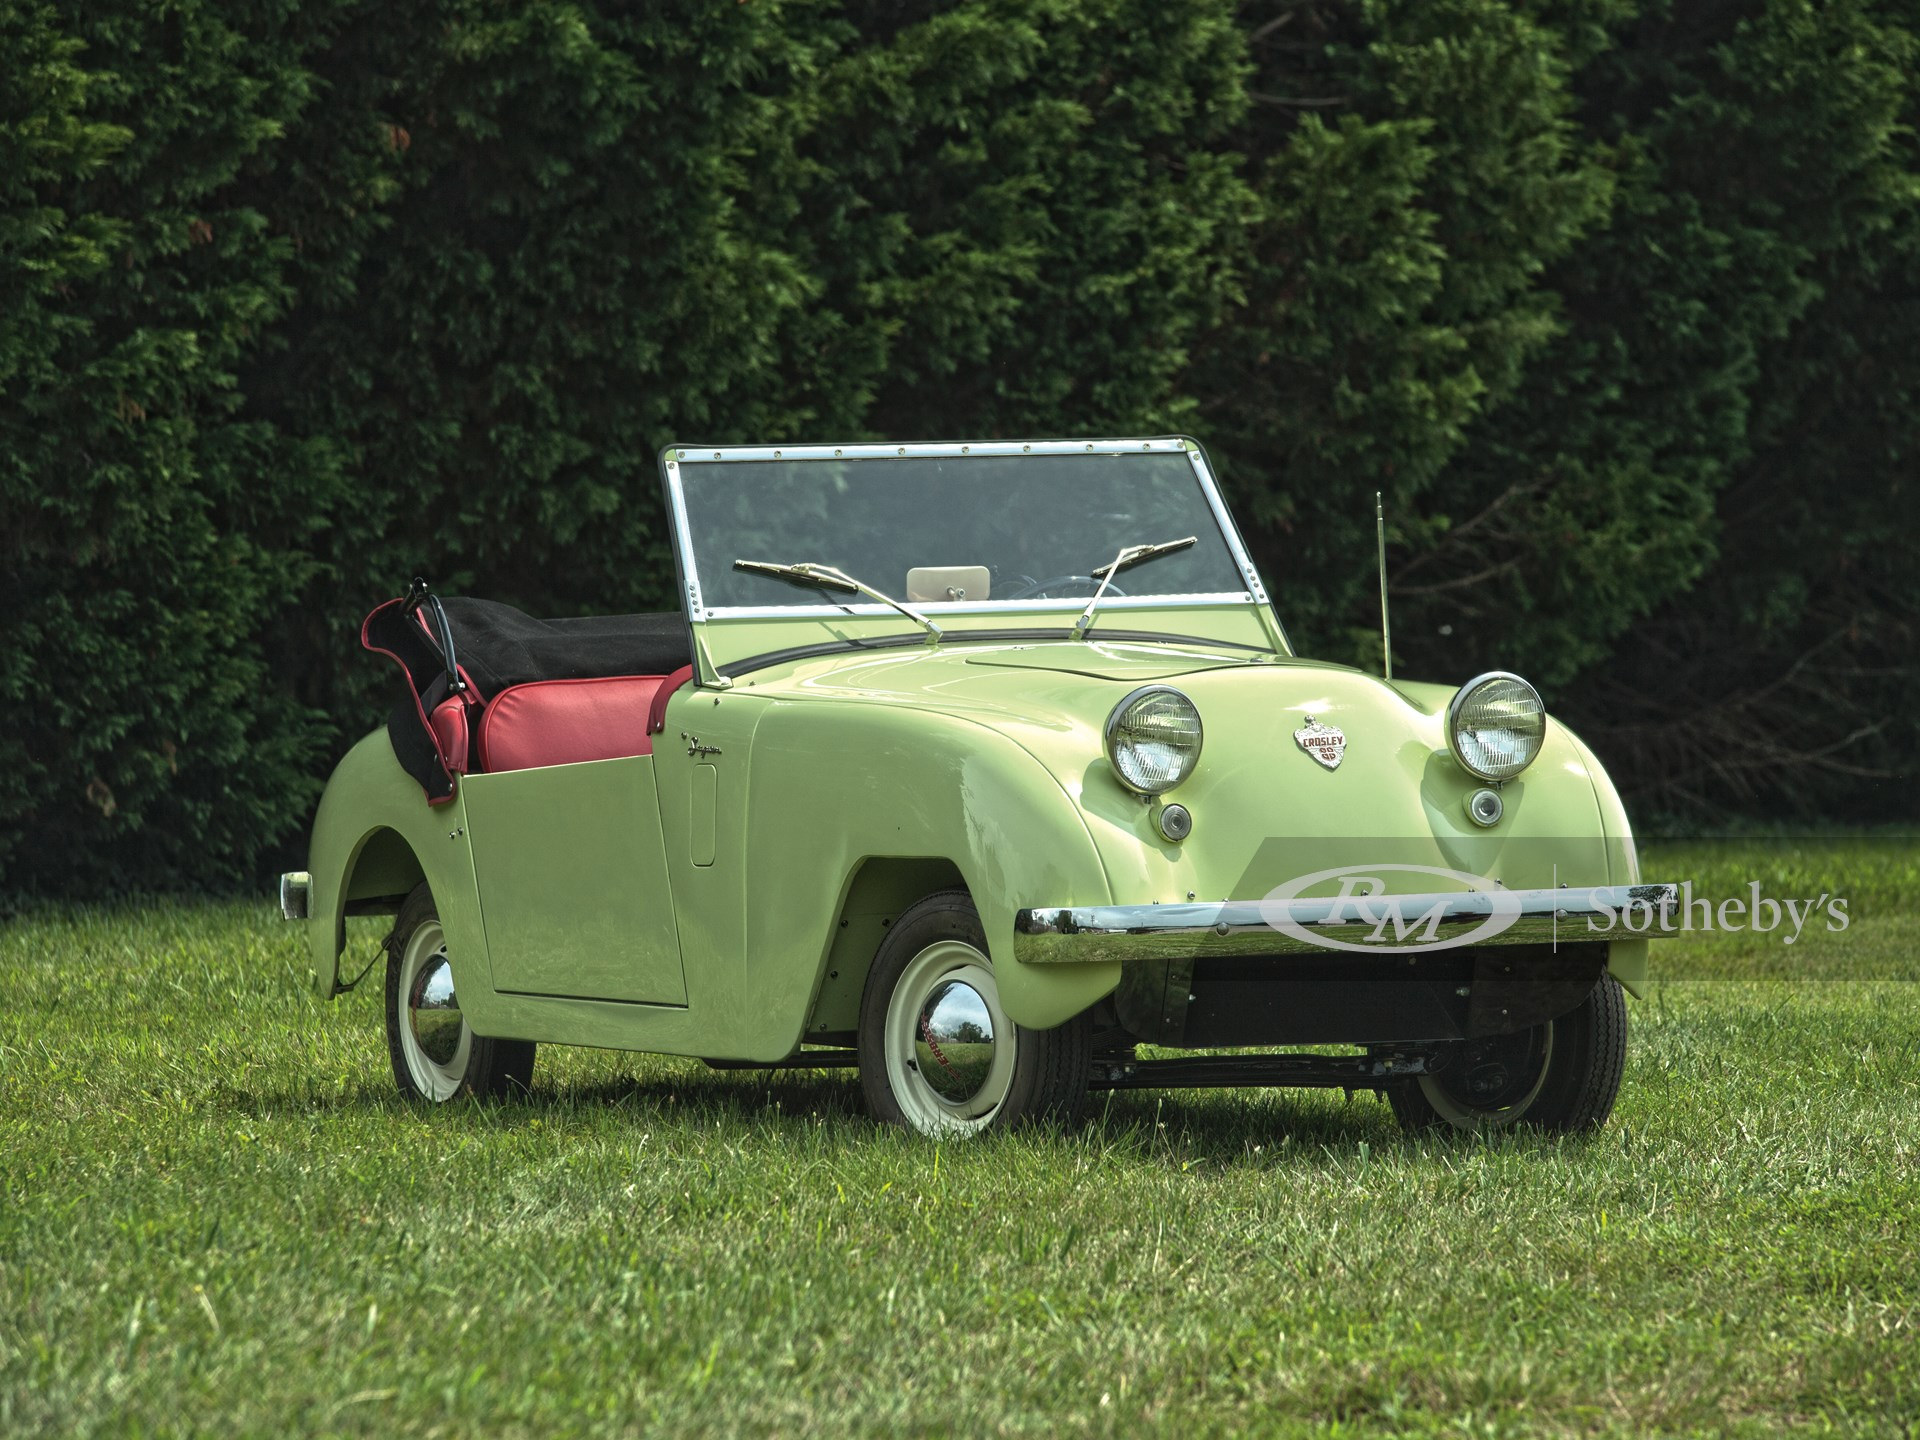 1949 Crosley Super Hot Shot Roadster